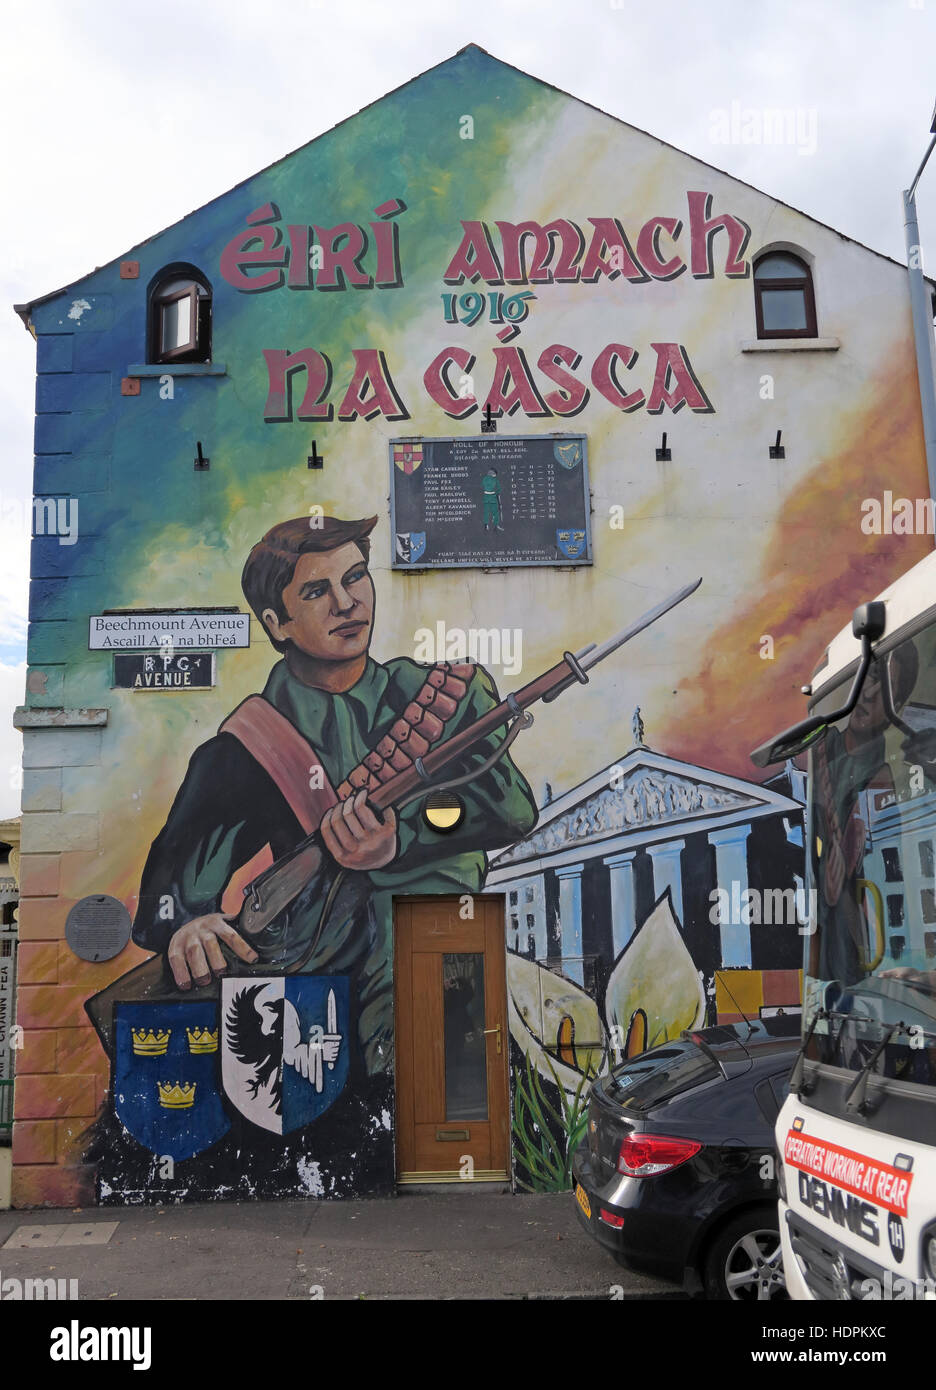 Road,painting,graffiti,resistance,IRA,peace,Northern Ireland,NI,UK,St,street,Eire,Irish,Republic,Irish Republic,conflict,Irish Republican Army,Political Change,RPG Avenue,RPG Ave,Beechmount Avenue,1916 Easter Rising,Beechmount,Beechmount Avenue,1916 Easter Rising,1916,Easter,Rising,GoTonySmith,@HotpixUK,Tony,Smith,UK,GB,Great,Britain,United,Kingdom,Irish,British,Ireland,problem,with,problem with,issue with,NI,Northern,Northern Ireland,Belfast,City,Centre,Art,Artists,the,troubles,The Troubles,Good Friday Agreement,Peace,honour,painting,wall,walls,tribute,republicanism,Fight,Justice,West,Beal,feirste,martyrs,social,tour,tourism,tourists,urban,six,counties,6,backdrop,county,Antrim,occupation,good,Friday,agreement,peace,reconciliation,IRA,terror,terrorists,genocide,catholic,community,catholics,Buy Pictures of,Buy Images Of,Images of,Stock Images,Tony Smith,United Kingdom,Great Britain,British Isles,republican cause,Irish History,Ireland History,Northern Ireland History,Belfast Catholic Community